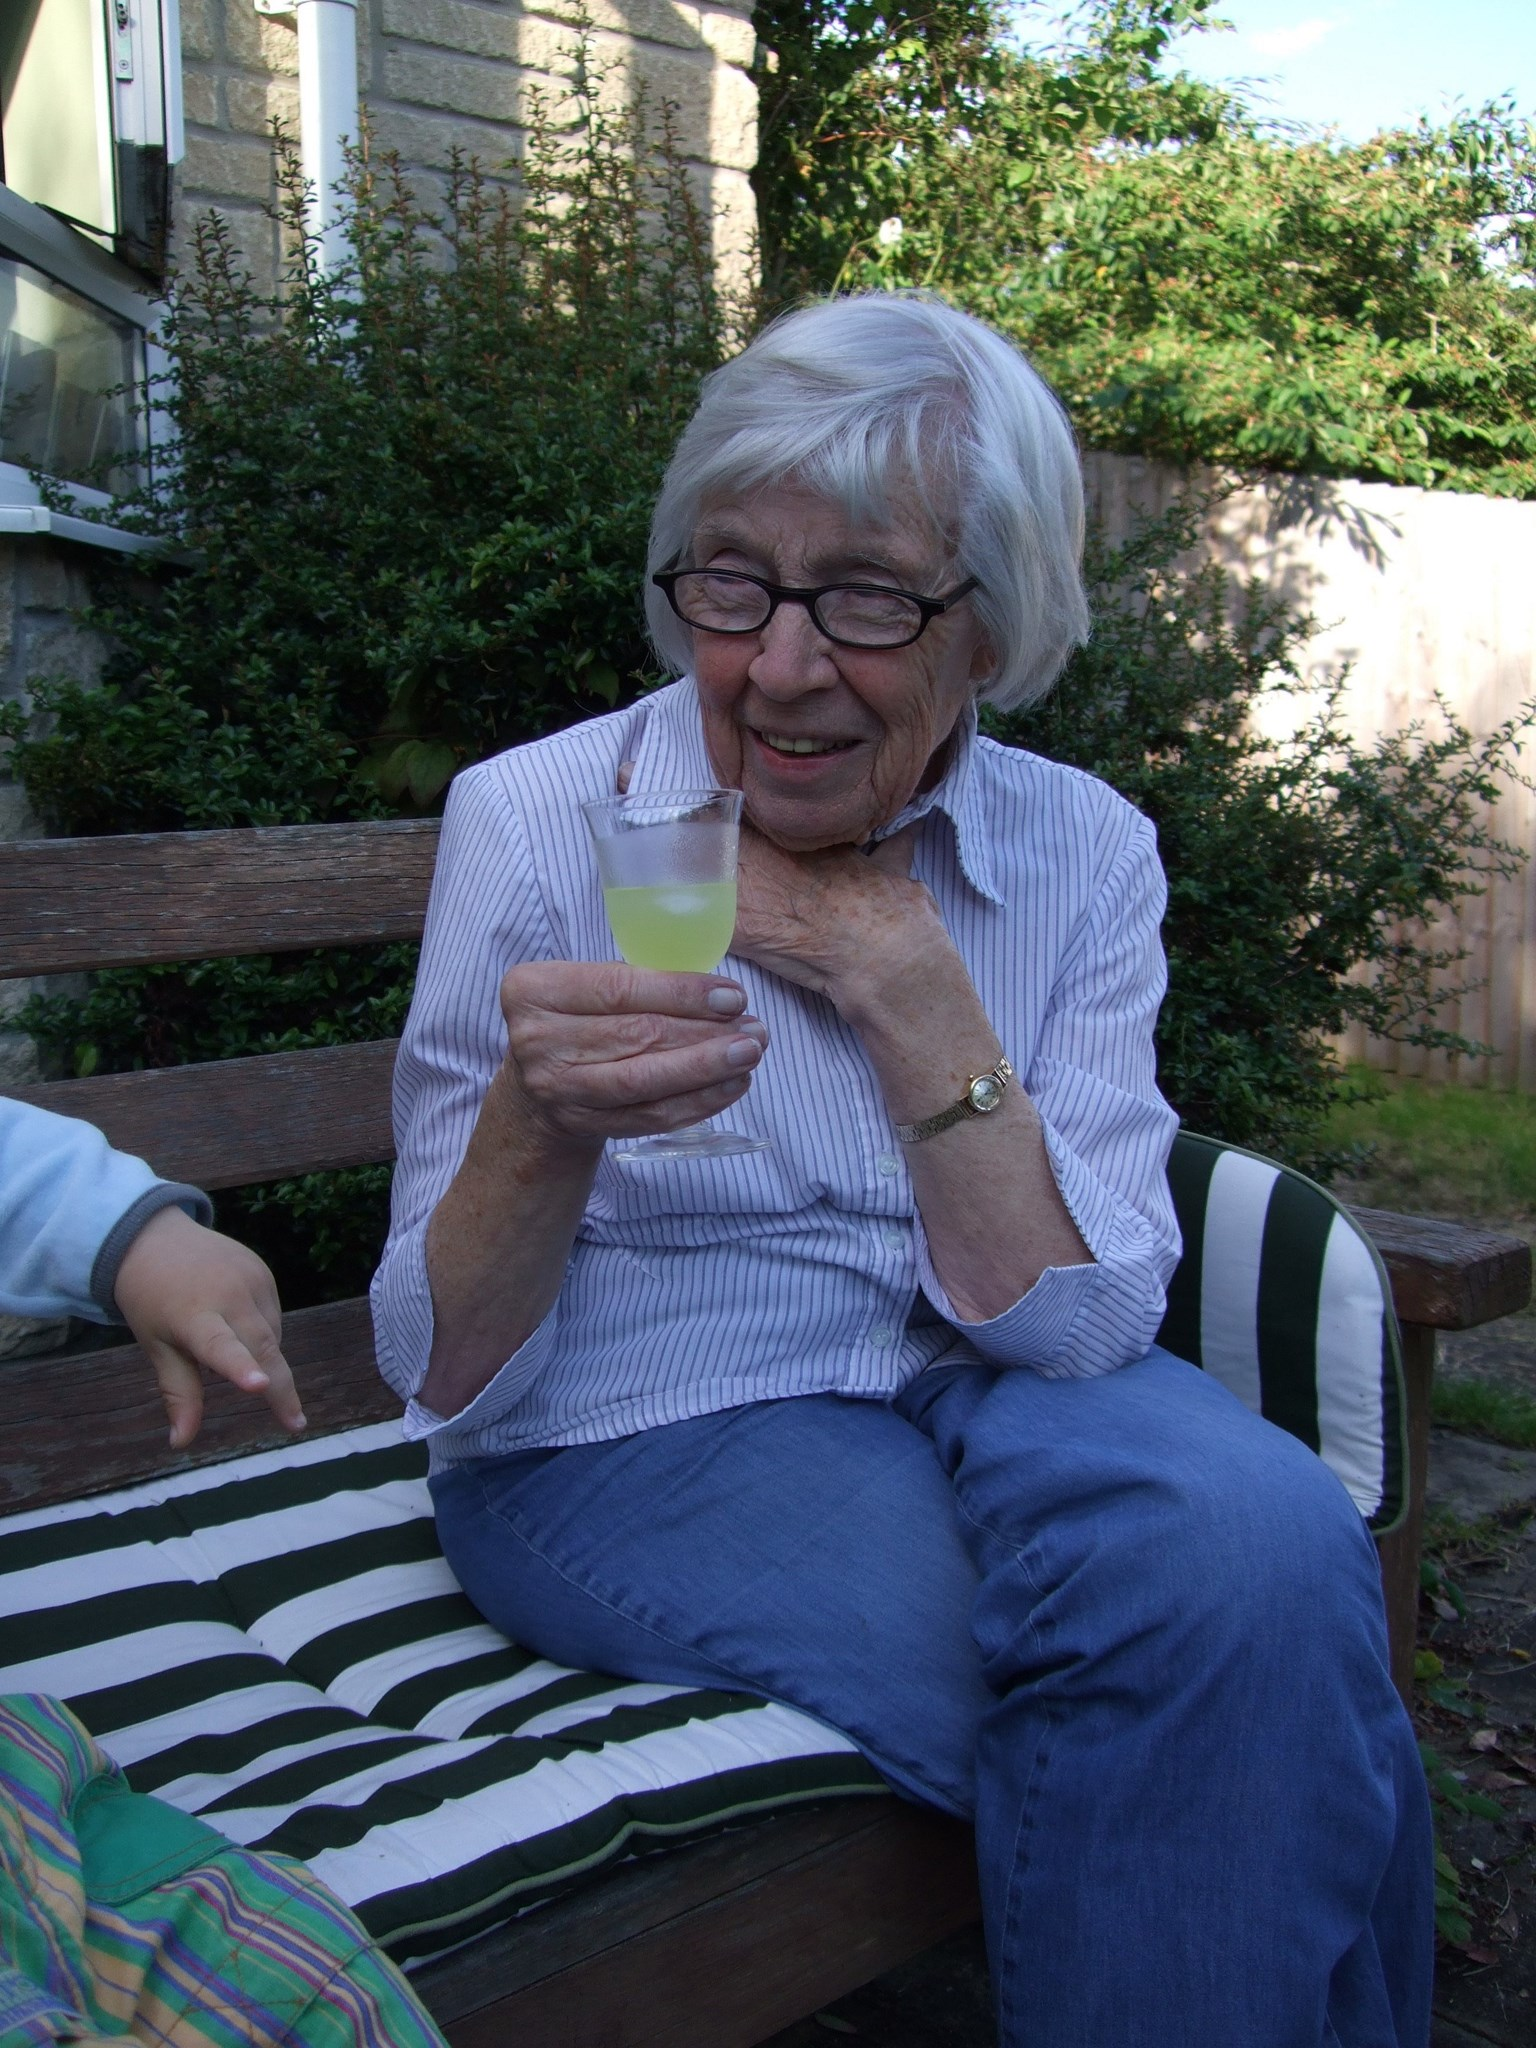 Sipping limoncello in Dorset, 2011